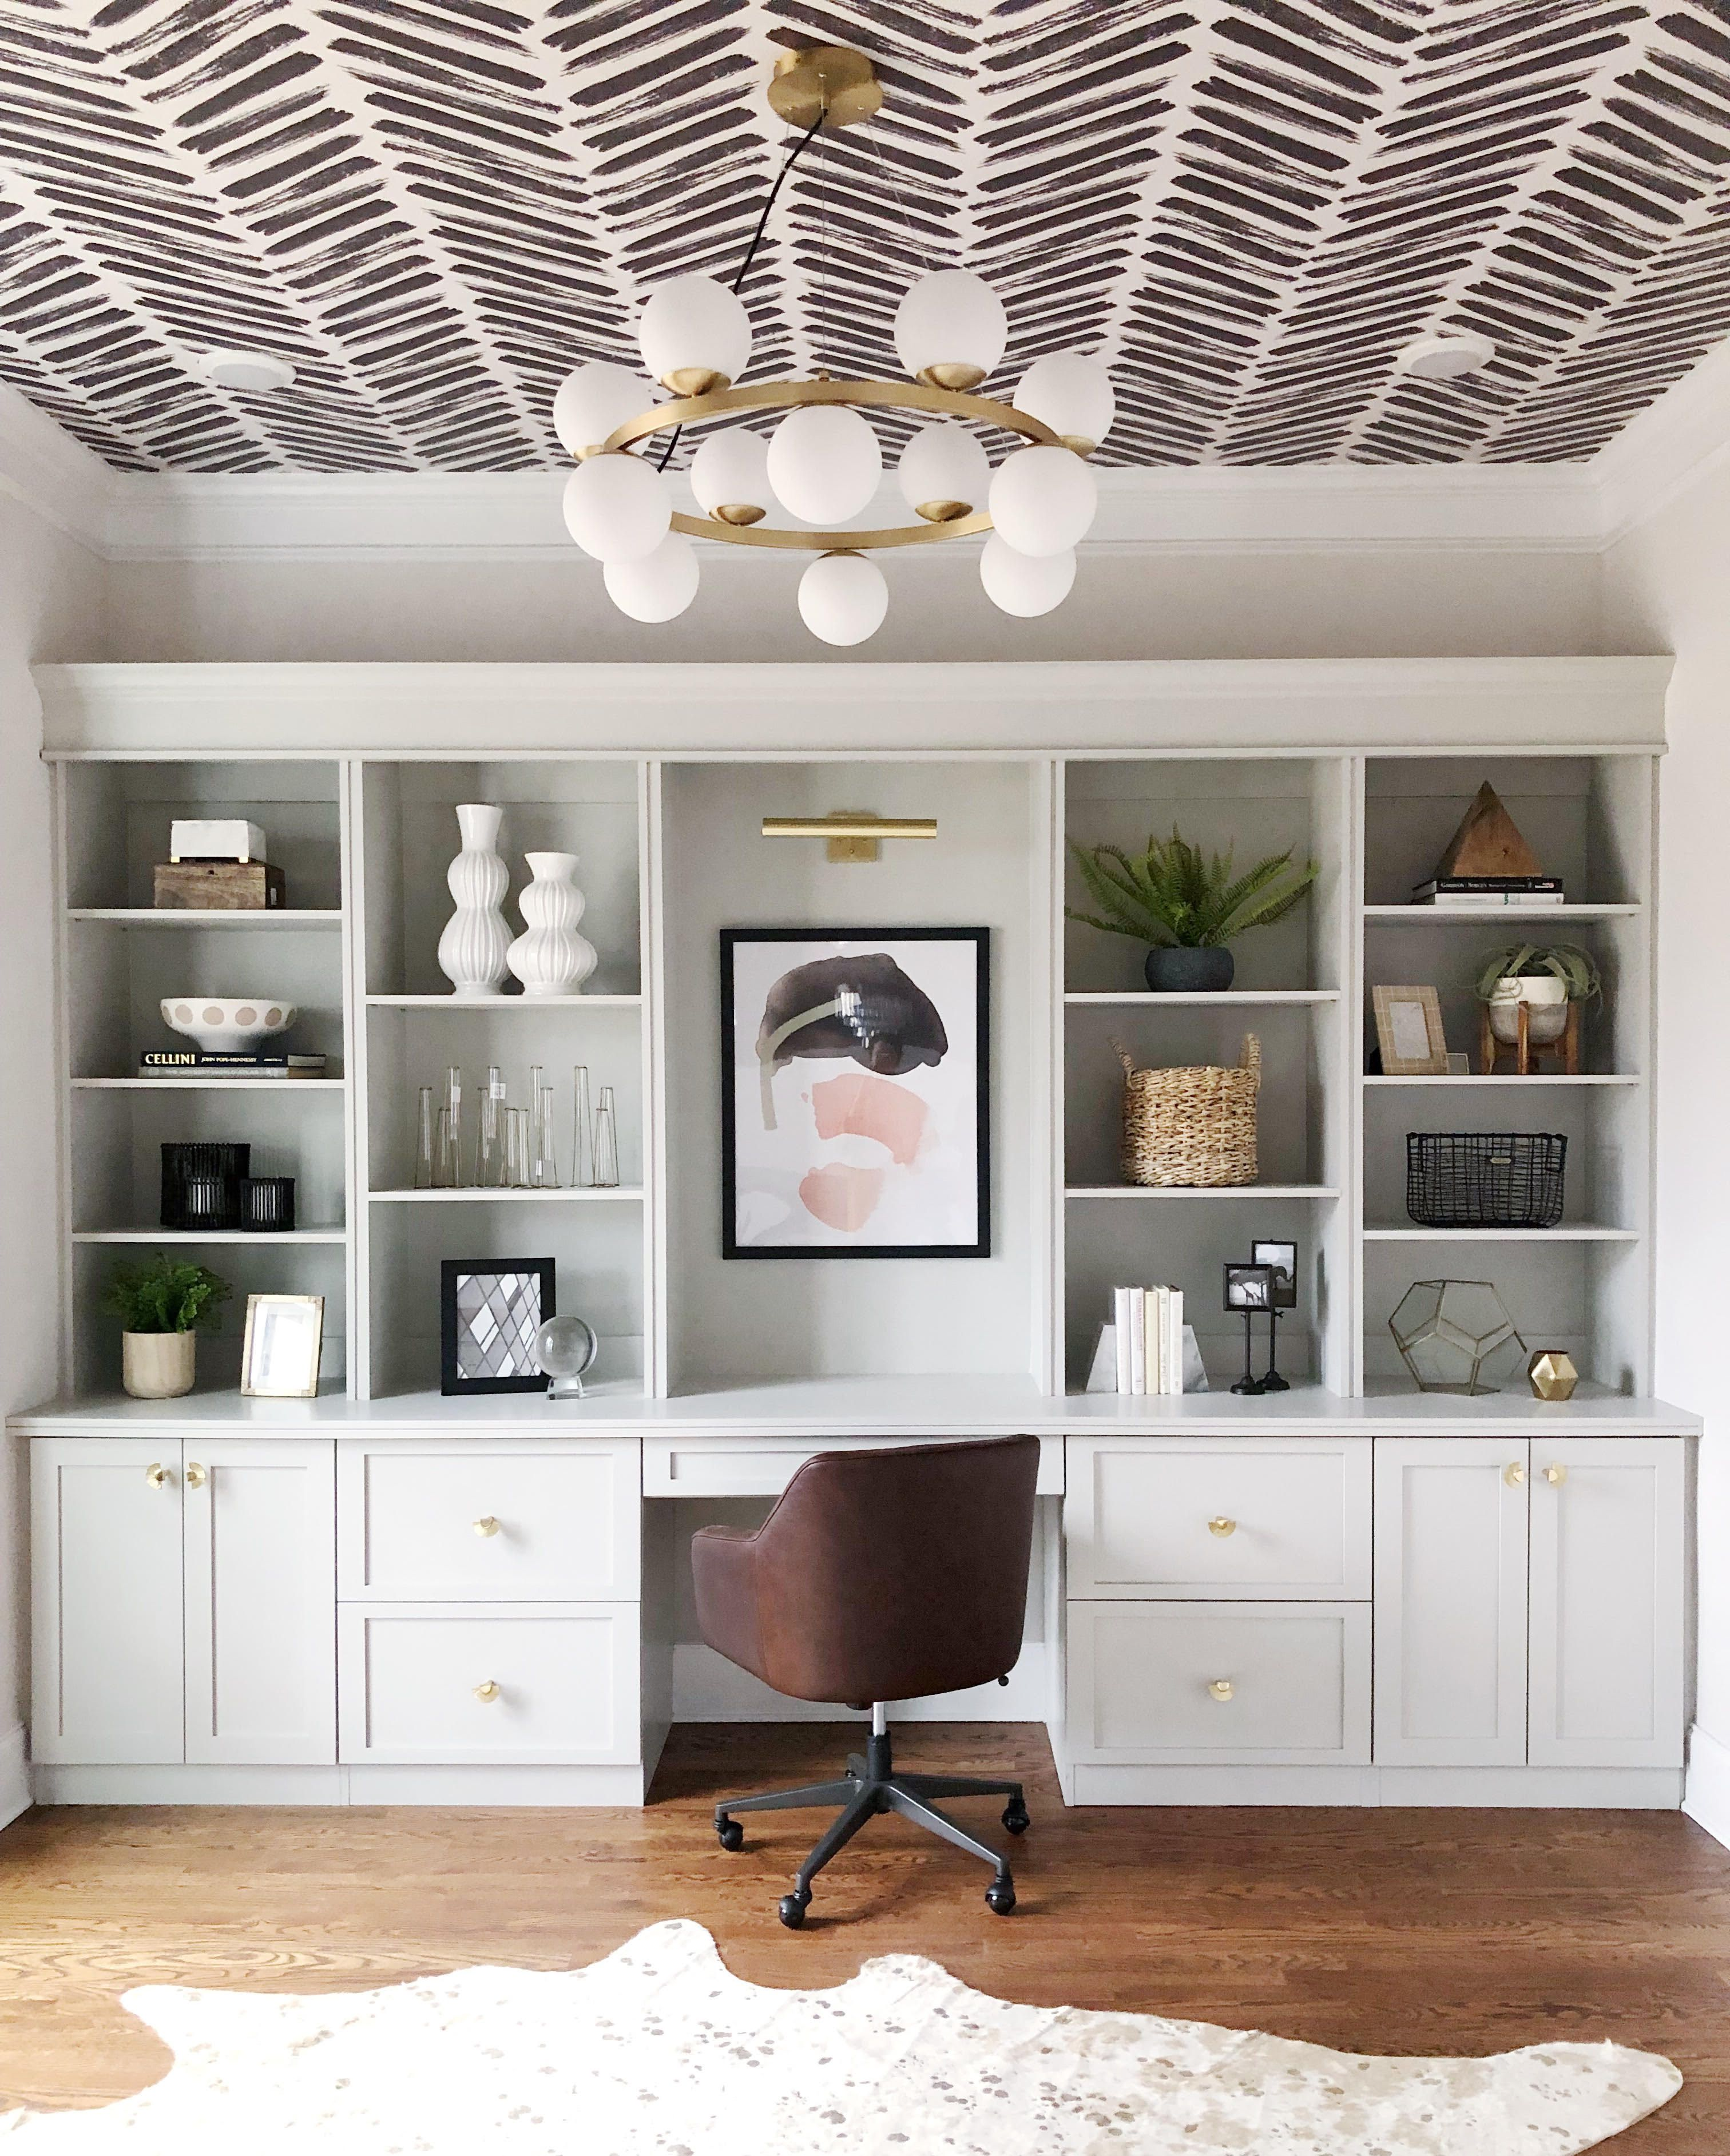 7 Wallpaper On The Ceiling Ideas To Try Now Home Office Design Home Home Office Decor